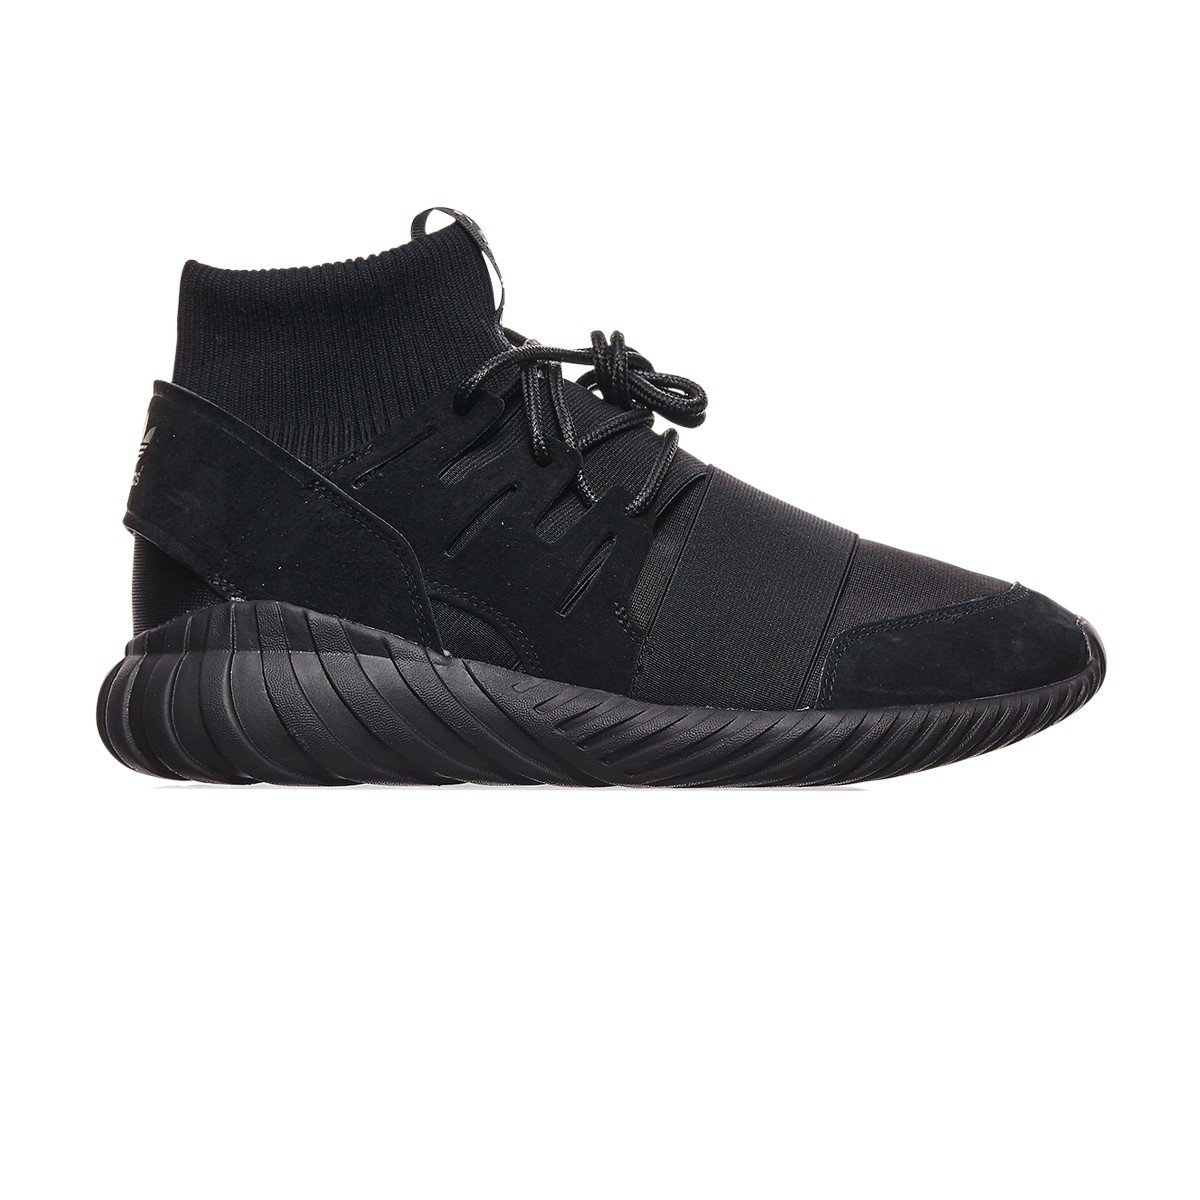 5d08c1ac62a4 adidas Tubular Doom Triple Black  Amazon.co.uk  Shoes   Bags